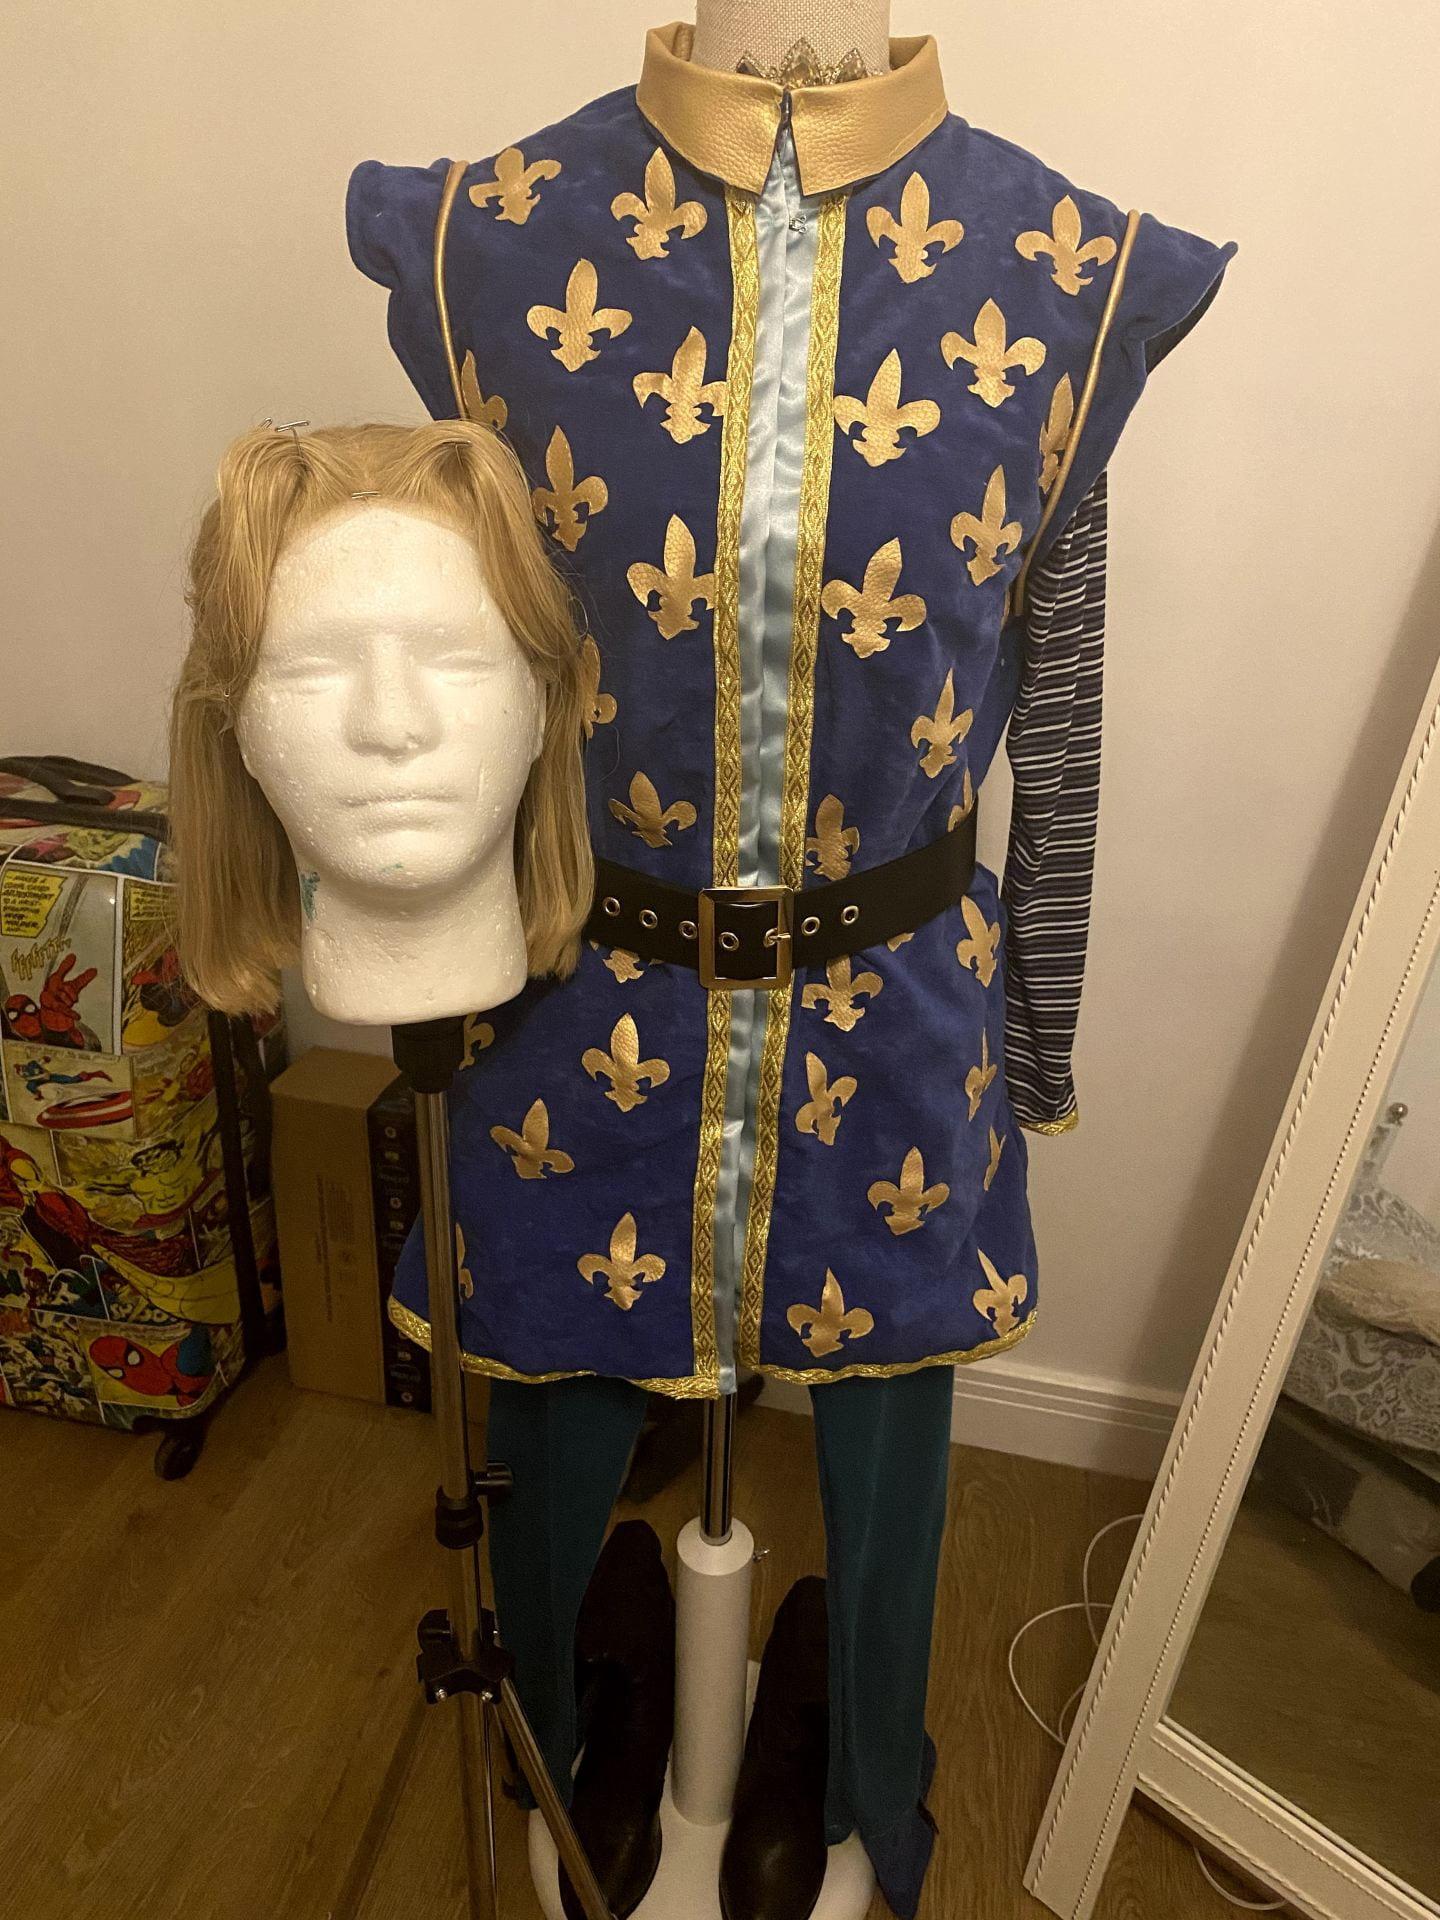 Full look at the price charming costume. Includes blonde wig, main blue bodice with gold detailing, blue leggings, black boots with a blue and gold trim and a black belt.